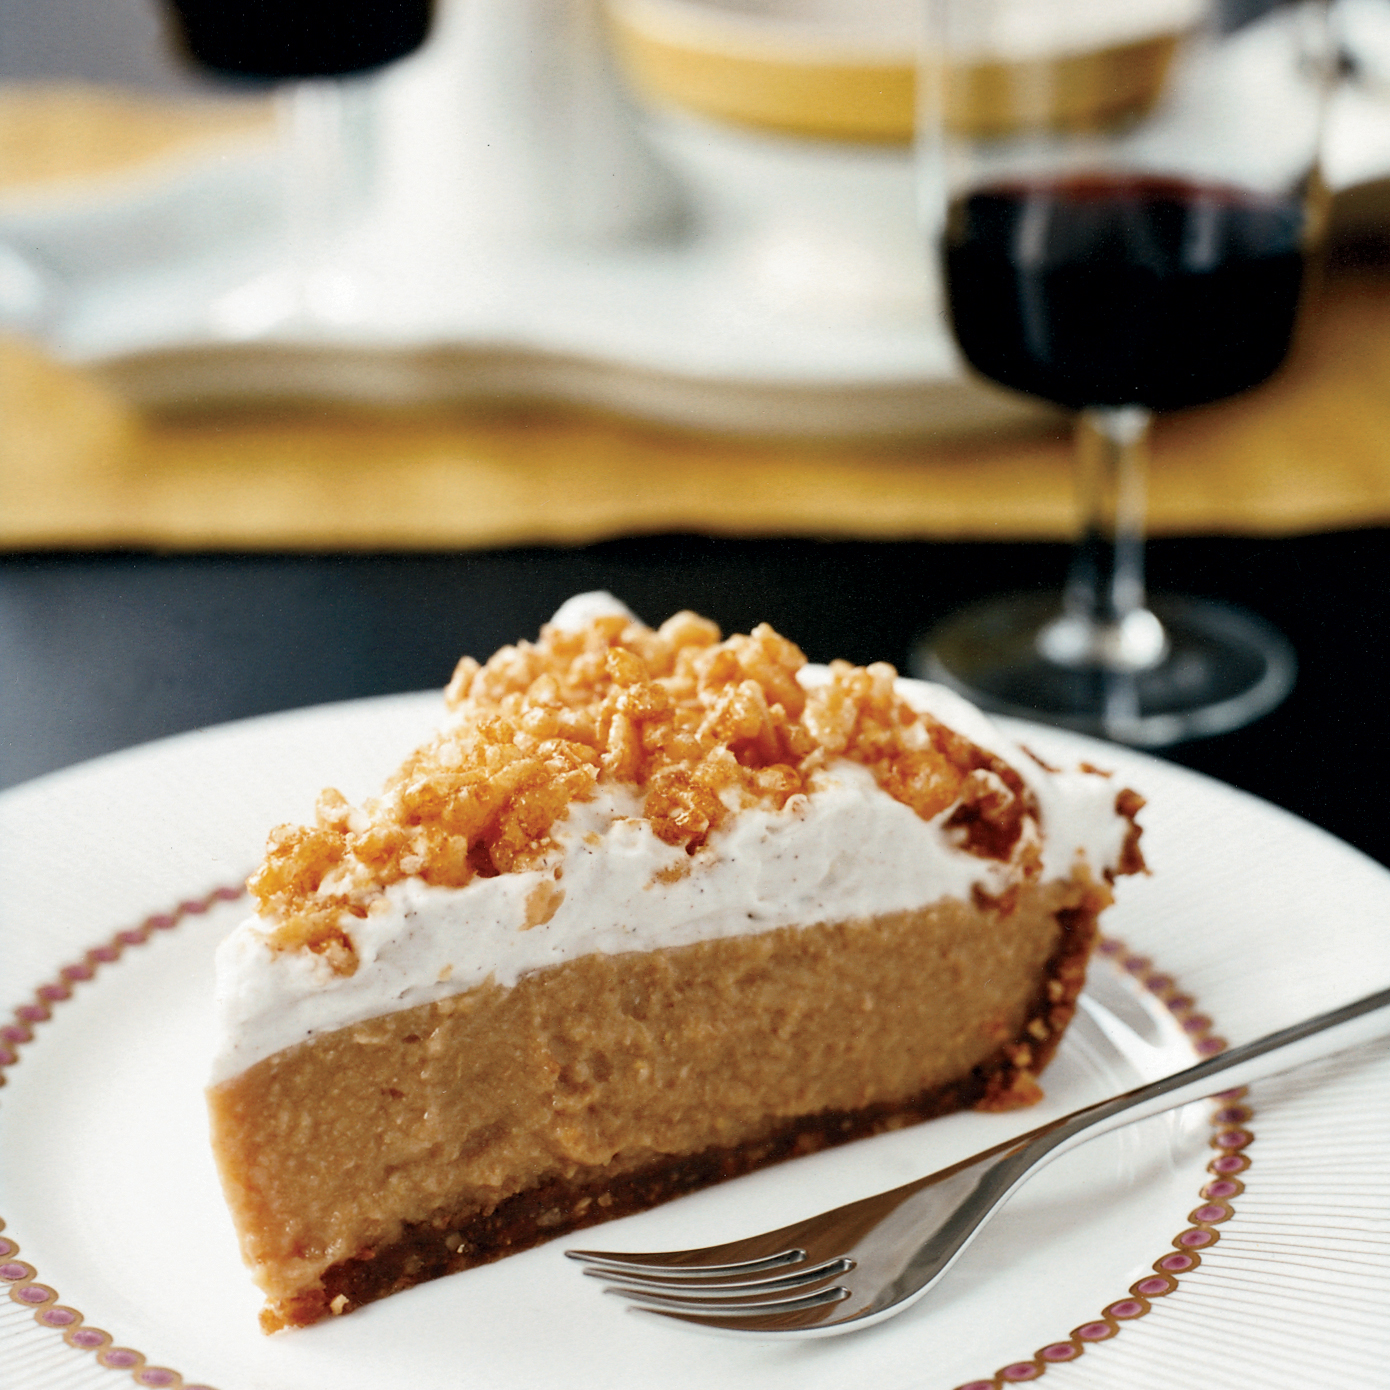 <p>Caramel Cream Pie with Crispy Rice Topping</p>